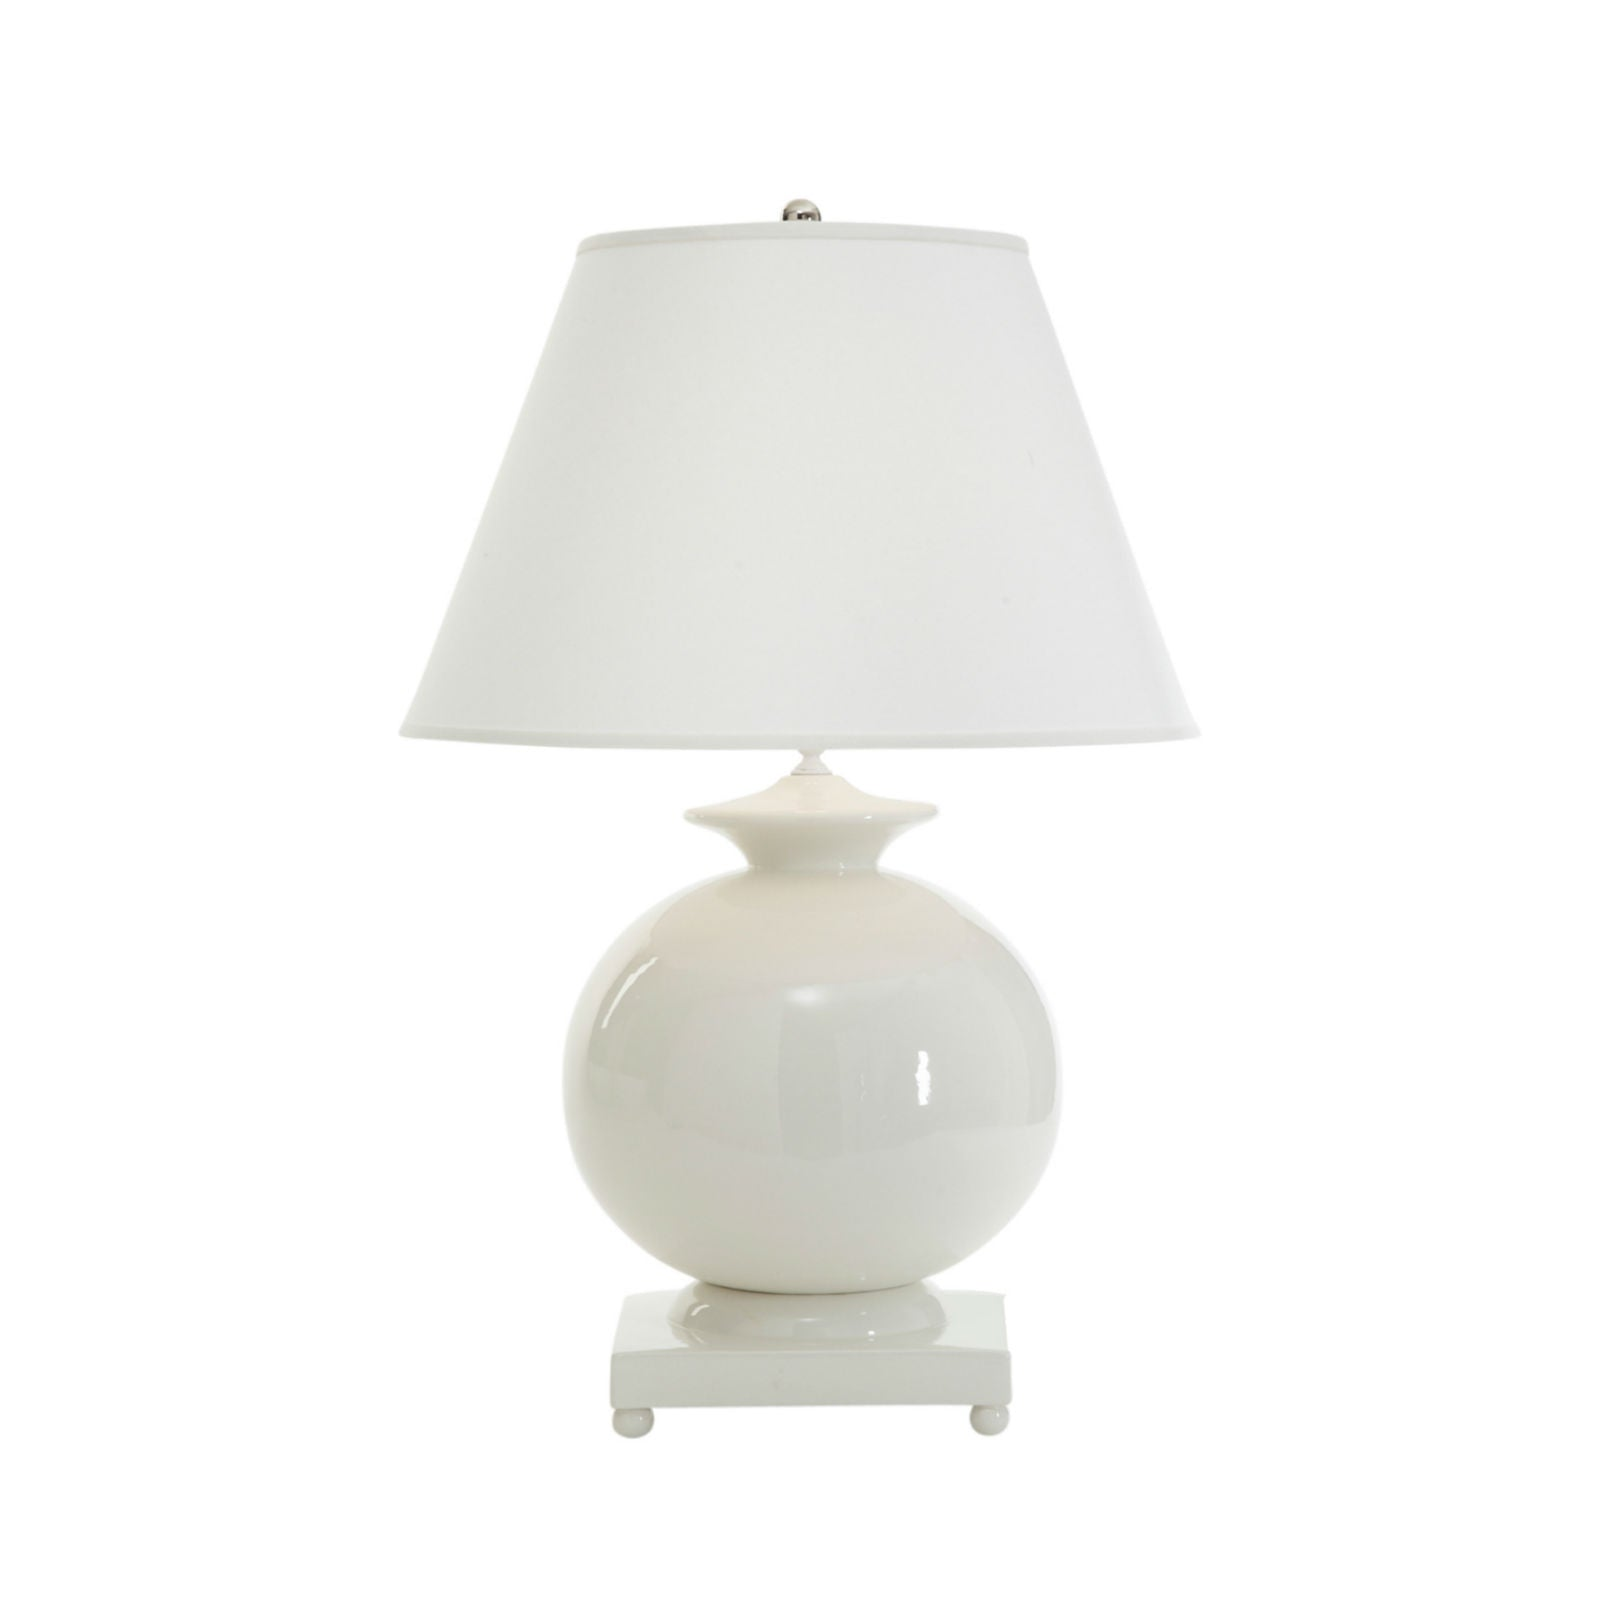 Savannah Lamp no. 1